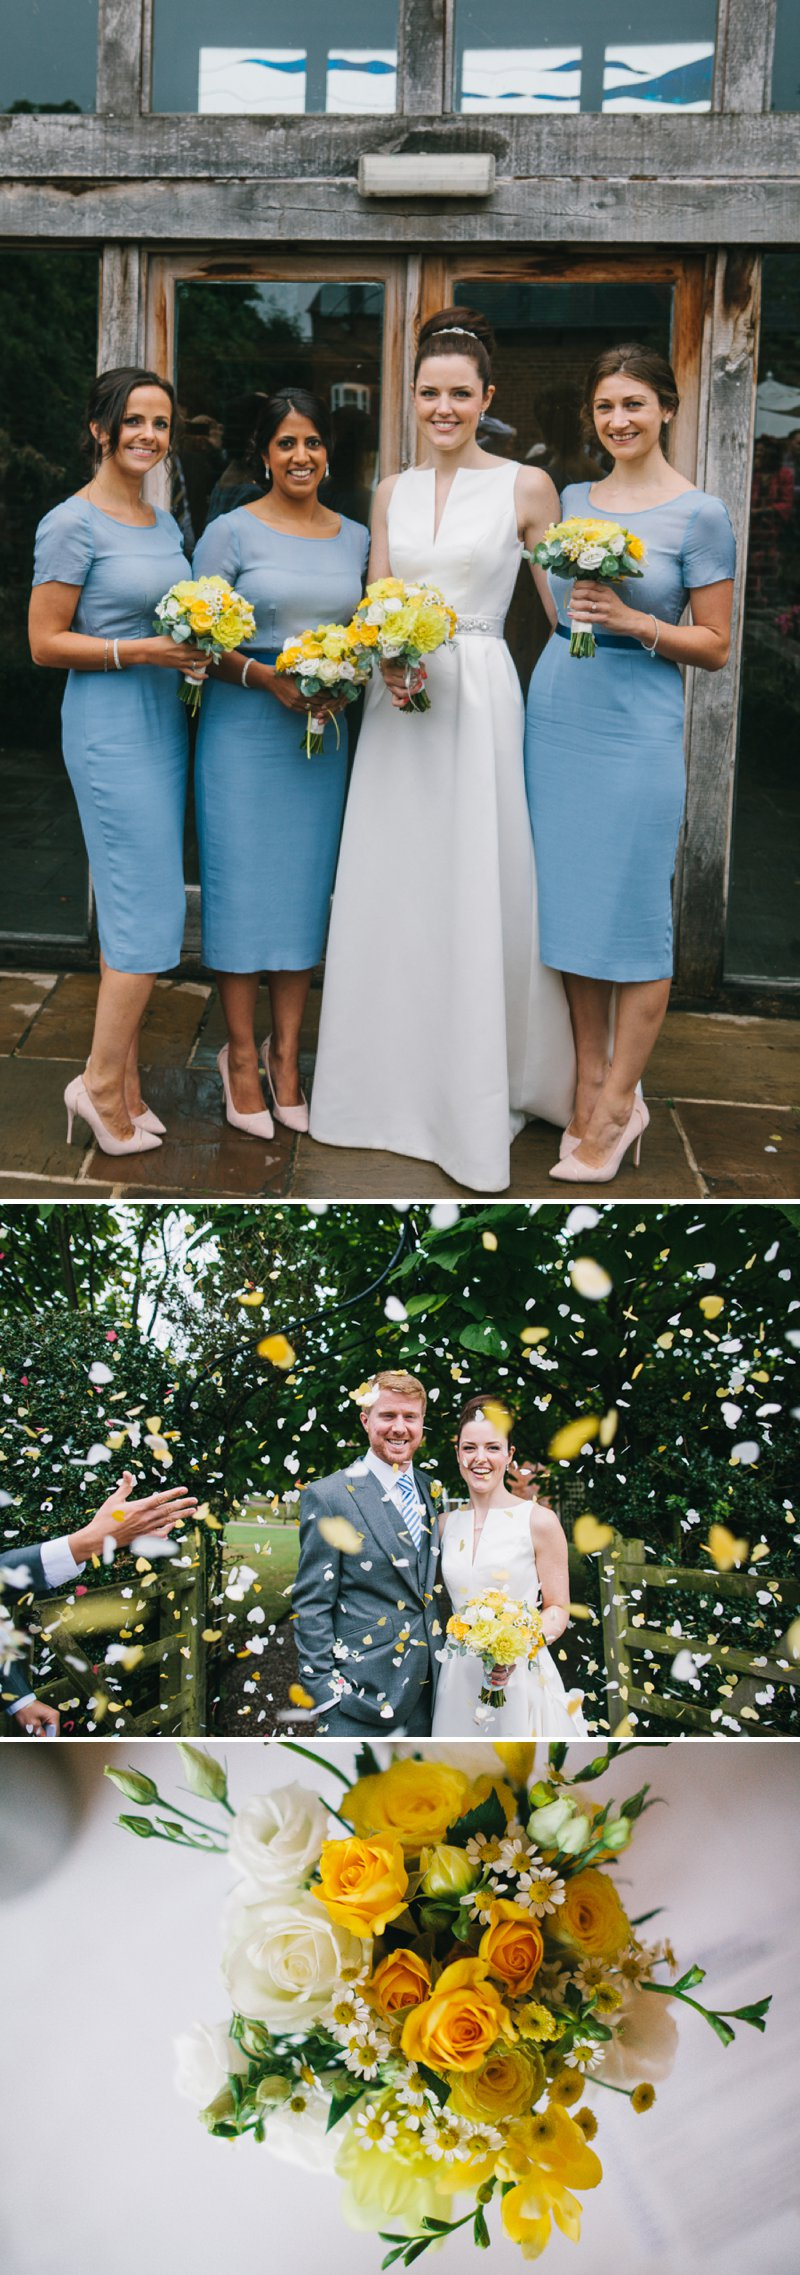 A Barn Wedding In Lichfield With Bride In Jesus Peiro Gown With Pockets And Groom In Bespoke Suit From King And Allen And Bridesmaids In Blue Structured Dresses From Reiss With A Neutral Colour Scheme 5